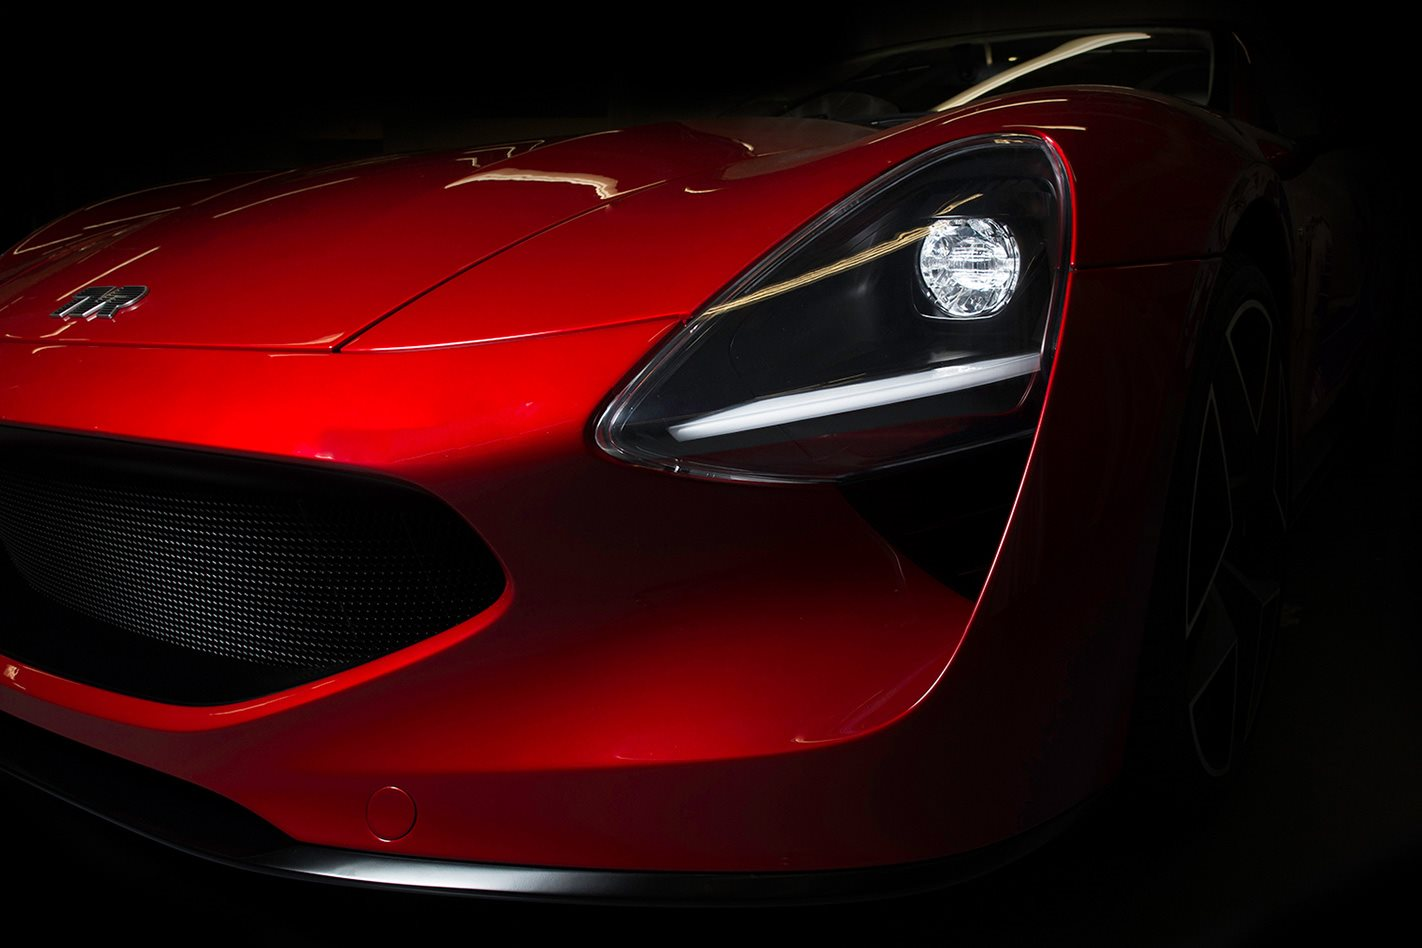 TVR Griffith headlights